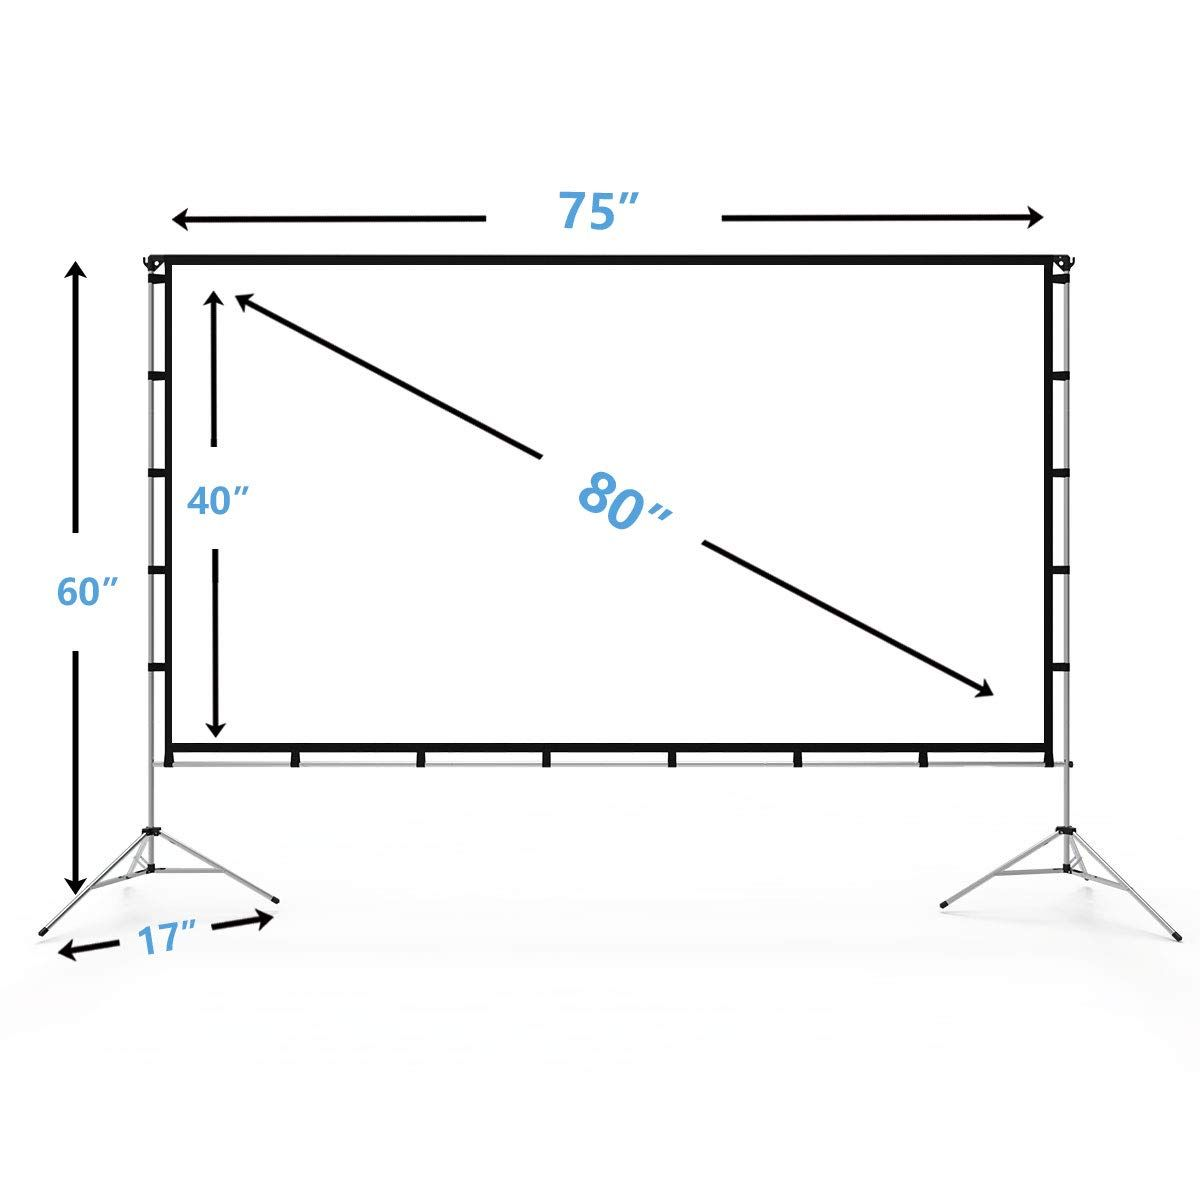 Vamvo Outdoor Indoor Projector Screen With Stand Foldable Portable Movie Screen 80 Inch 16 9 Fullset Bag For Home Home Theater Projector Screen Indoor Outdoor